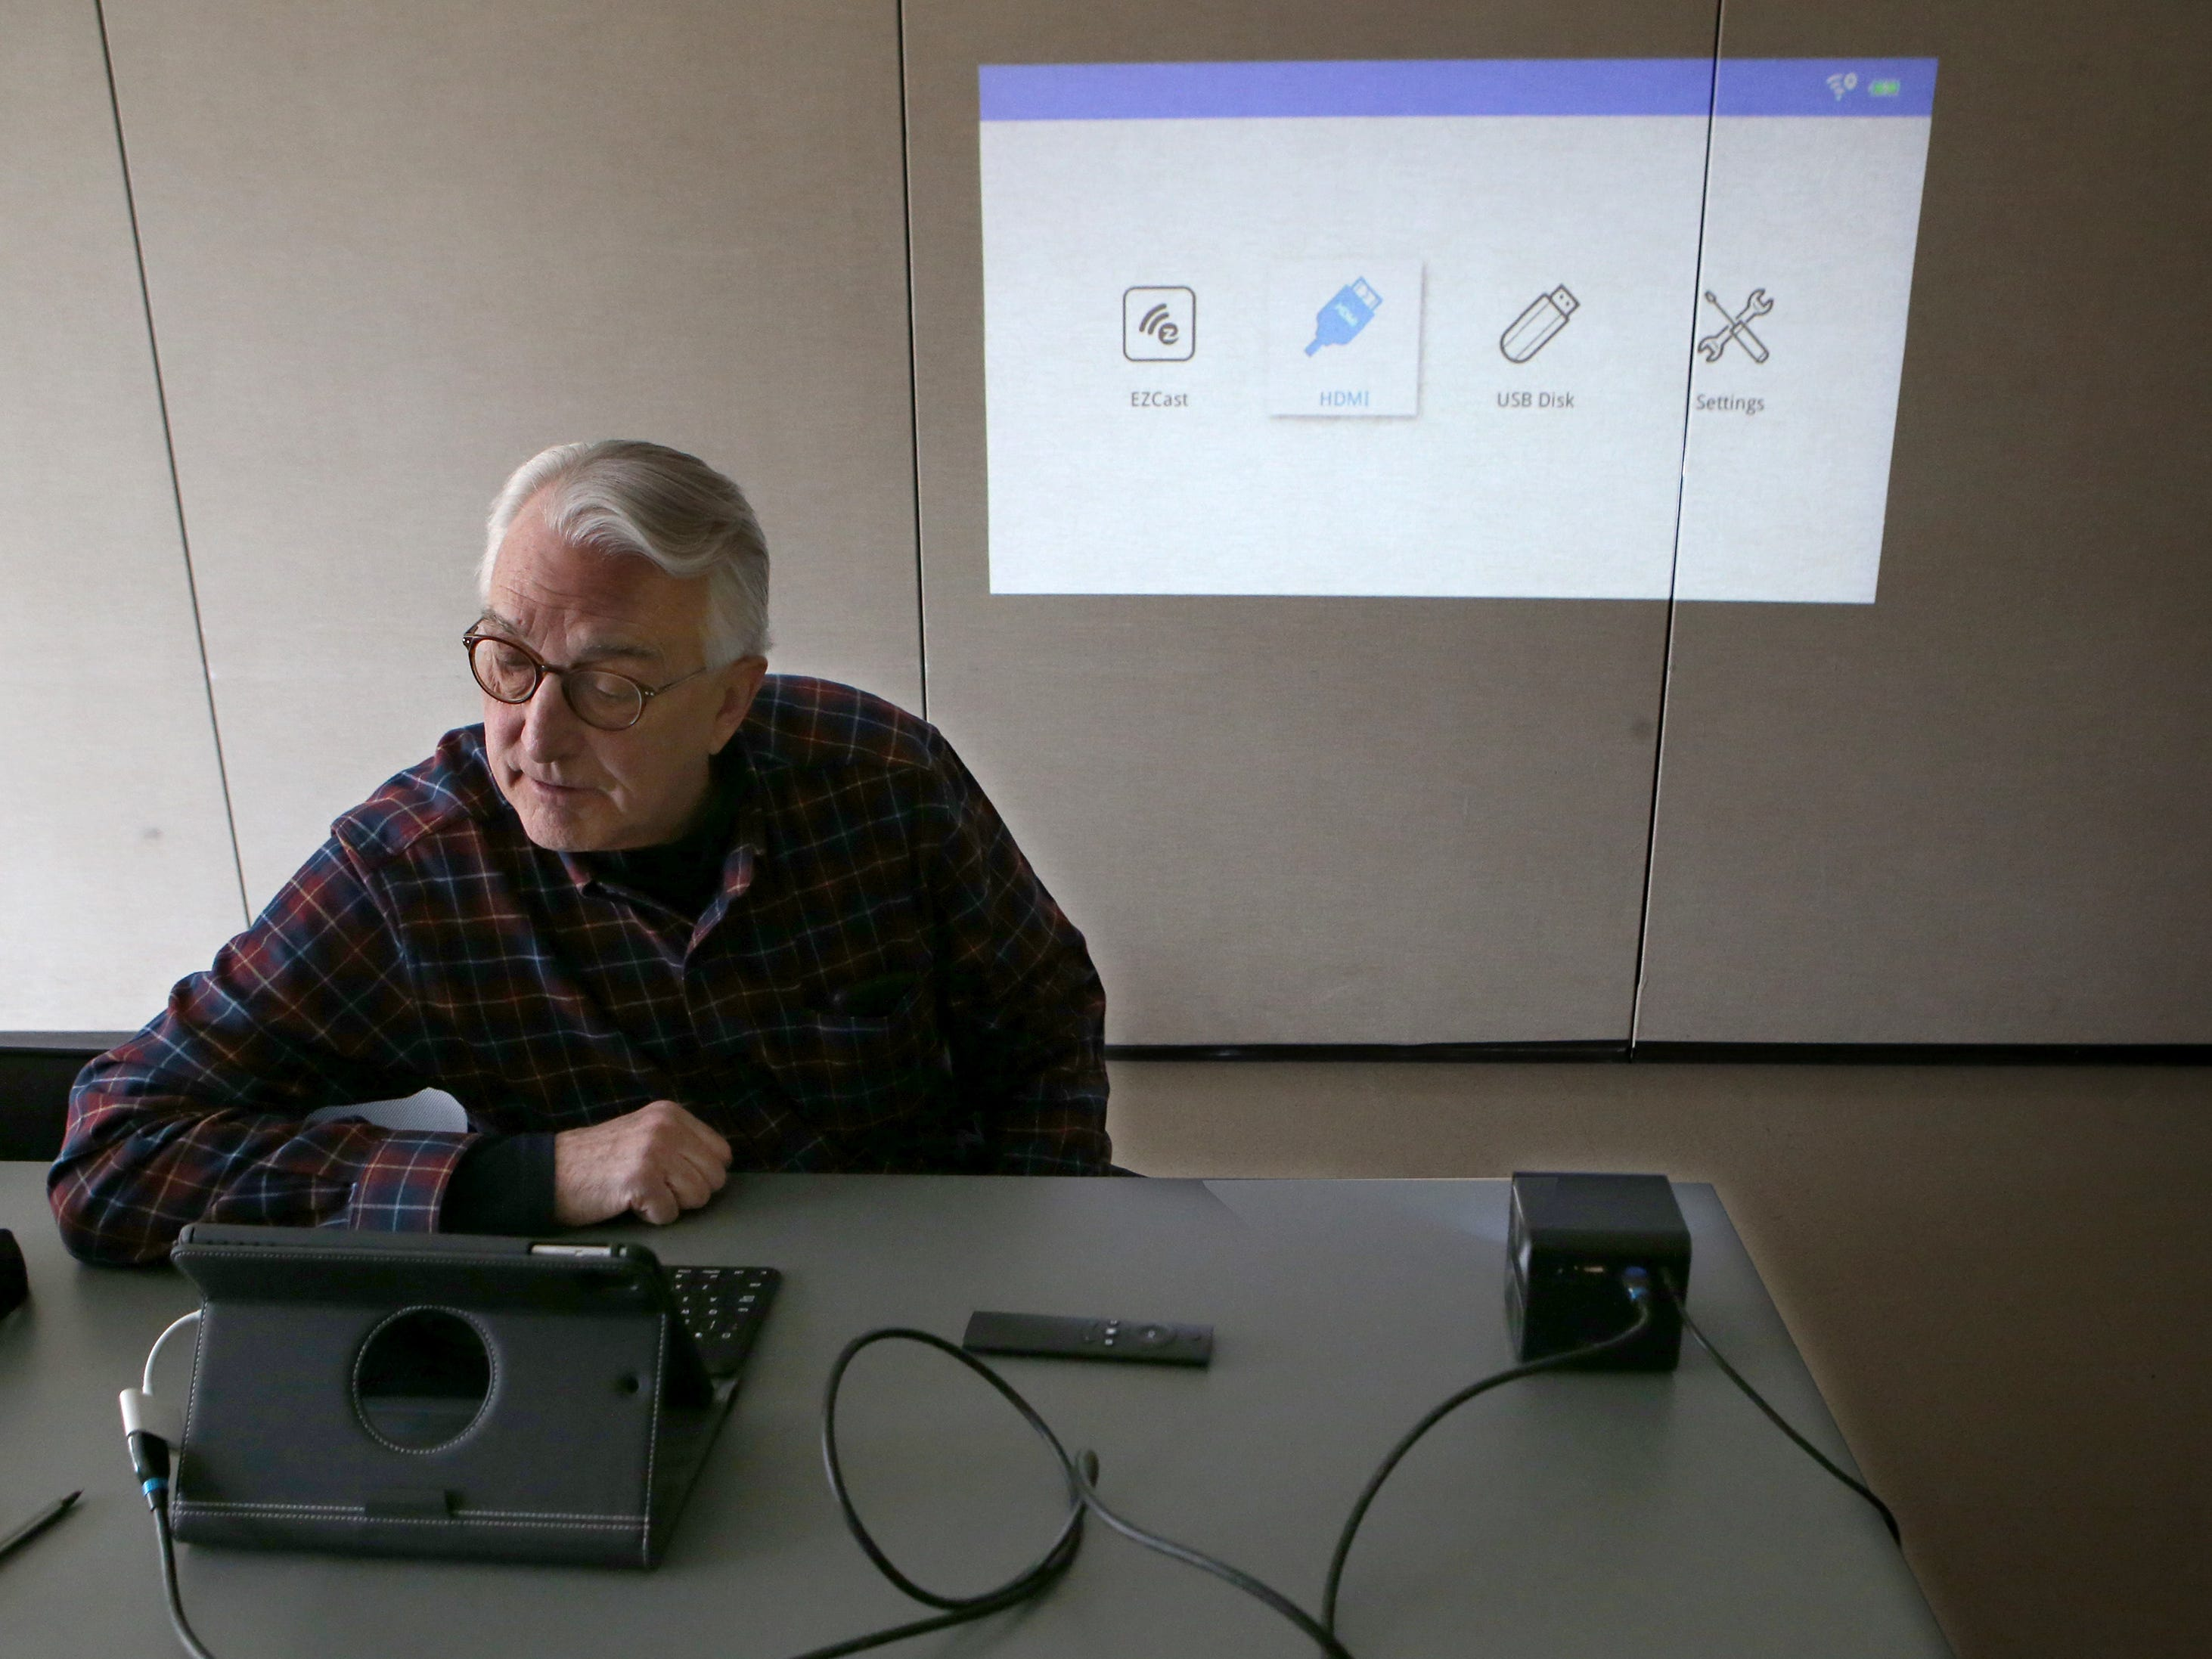 Peter Lee demonstrates a recently released GoSho portable high-definition projector that can connect to touch devices and computers during a gathering of If It Goes Beep, an informal discussion and problem solving group that meets at 9 a.m. Fridays at the Shorewood Senior Resource Center. The Center also offers One-to-One Tech Support Fridays from 9 a.m. to 11:30 a.m. for people to stop in with their technology questions.